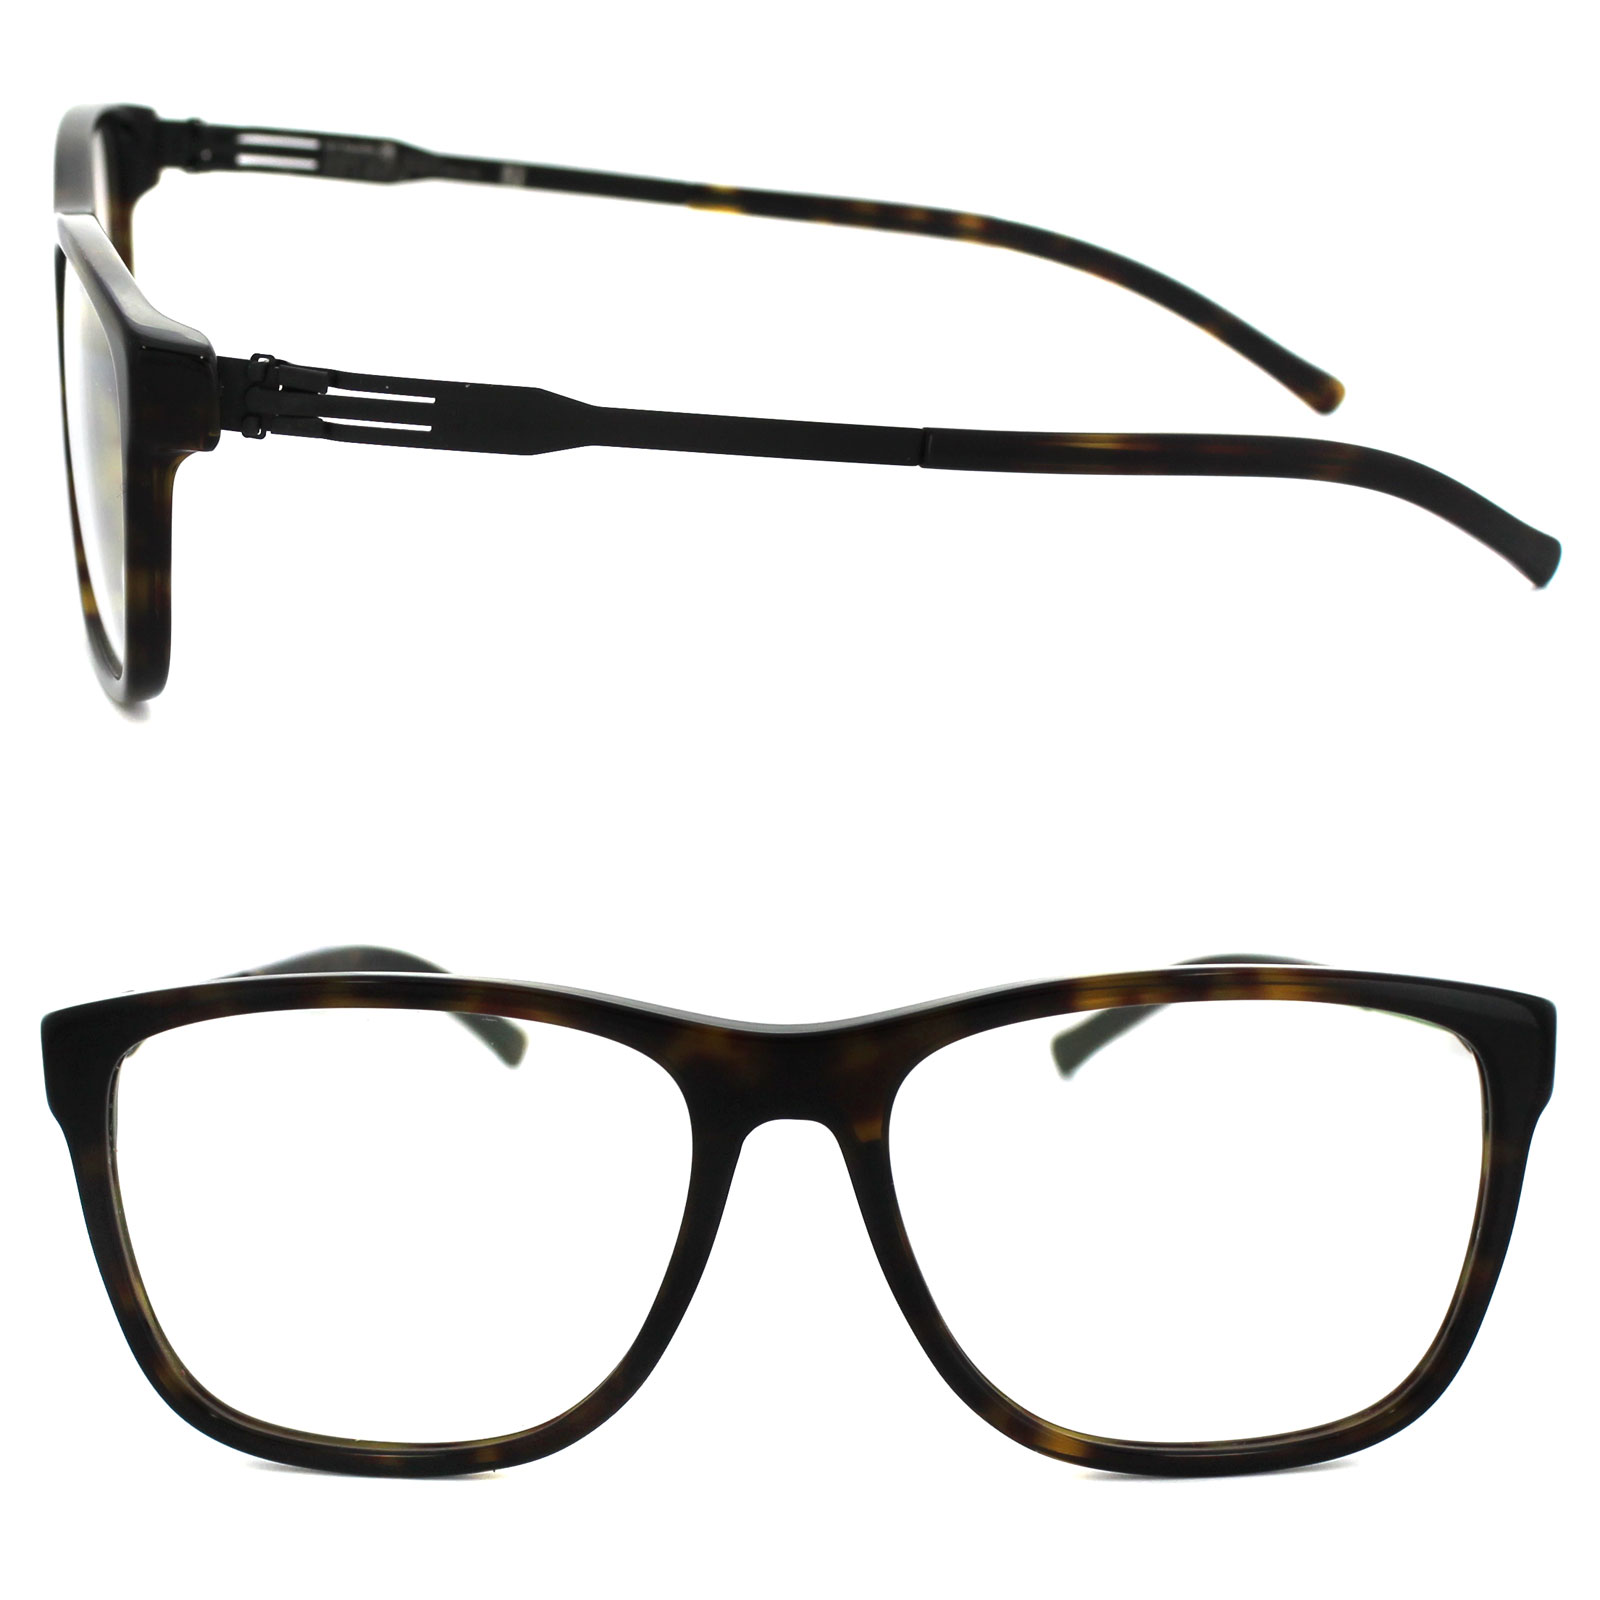 ic! berlin Glasses Frames Toni K. A0611708002708007fg Havana & Black ...